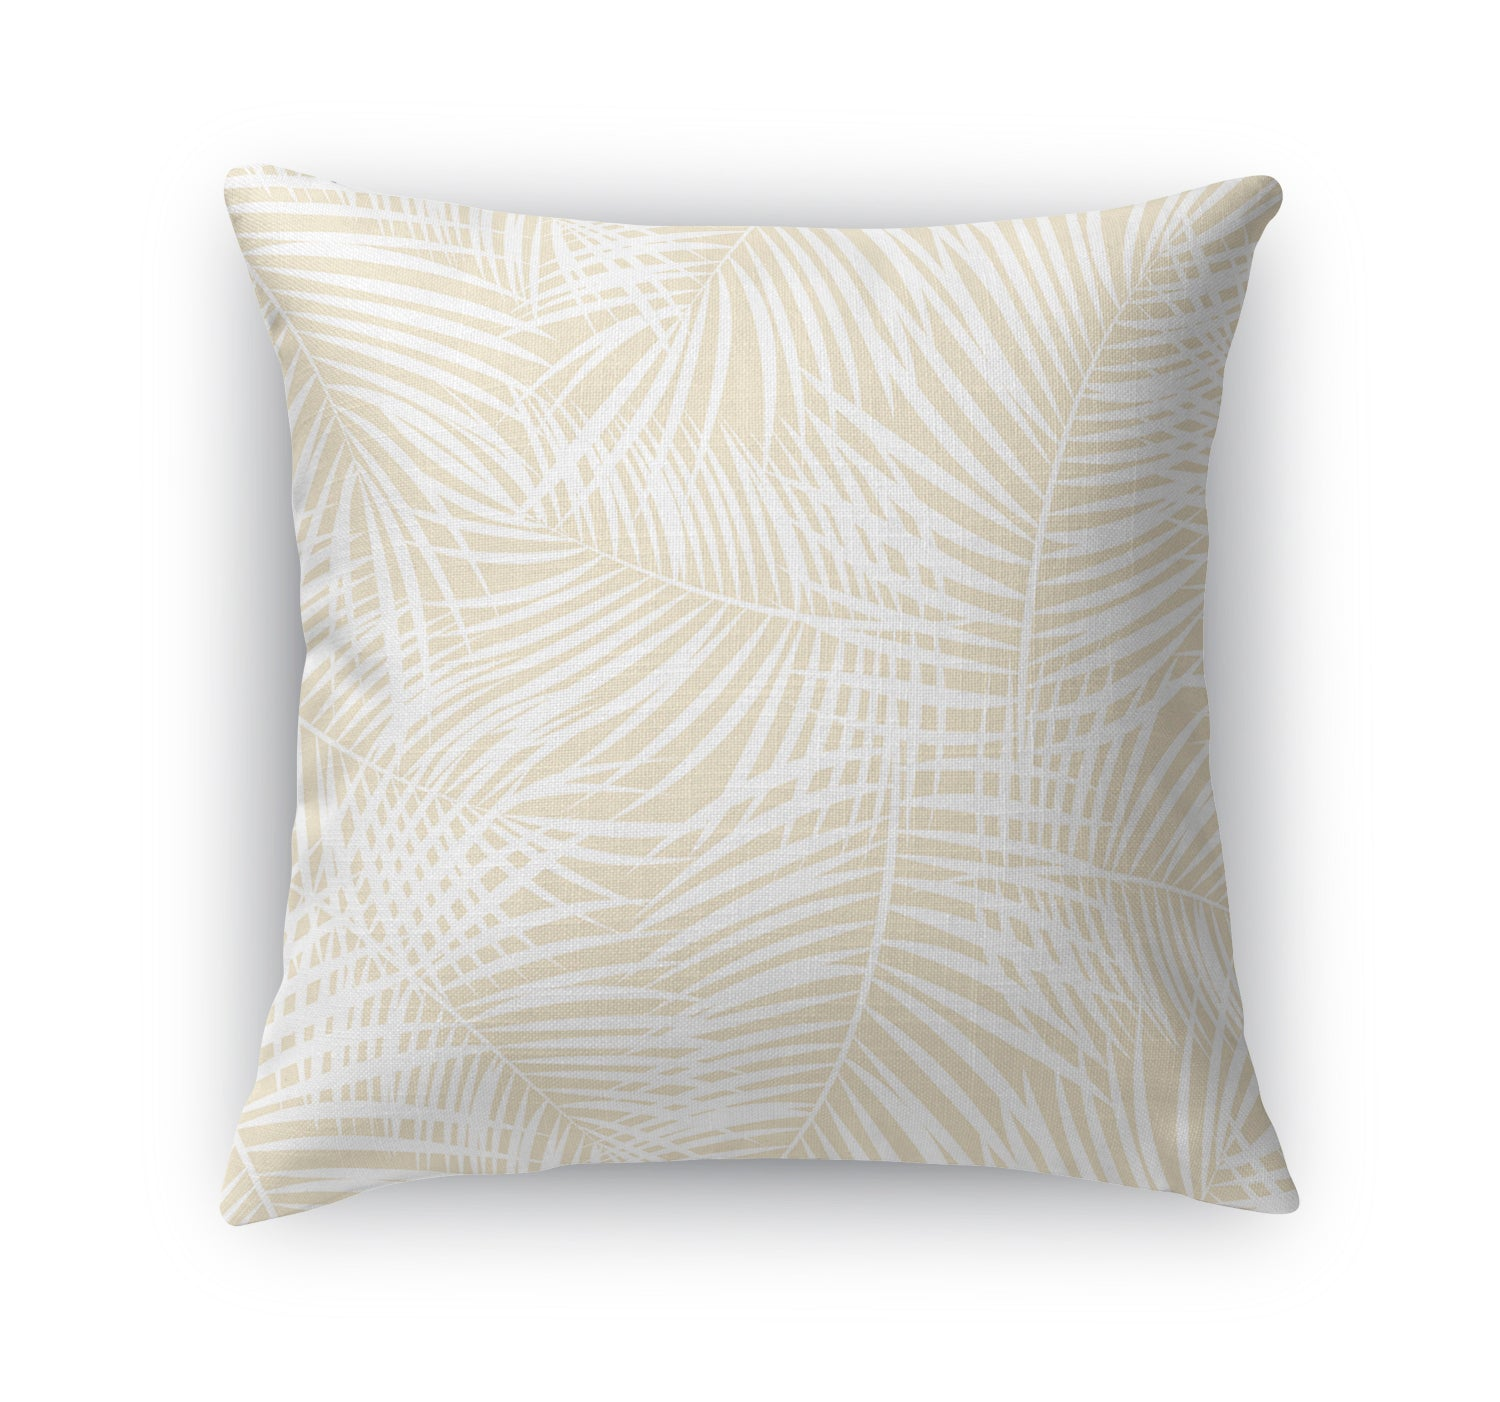 PALM PLAY OATMEAL Indoor|Outdoor Pillow By Terri Ellis